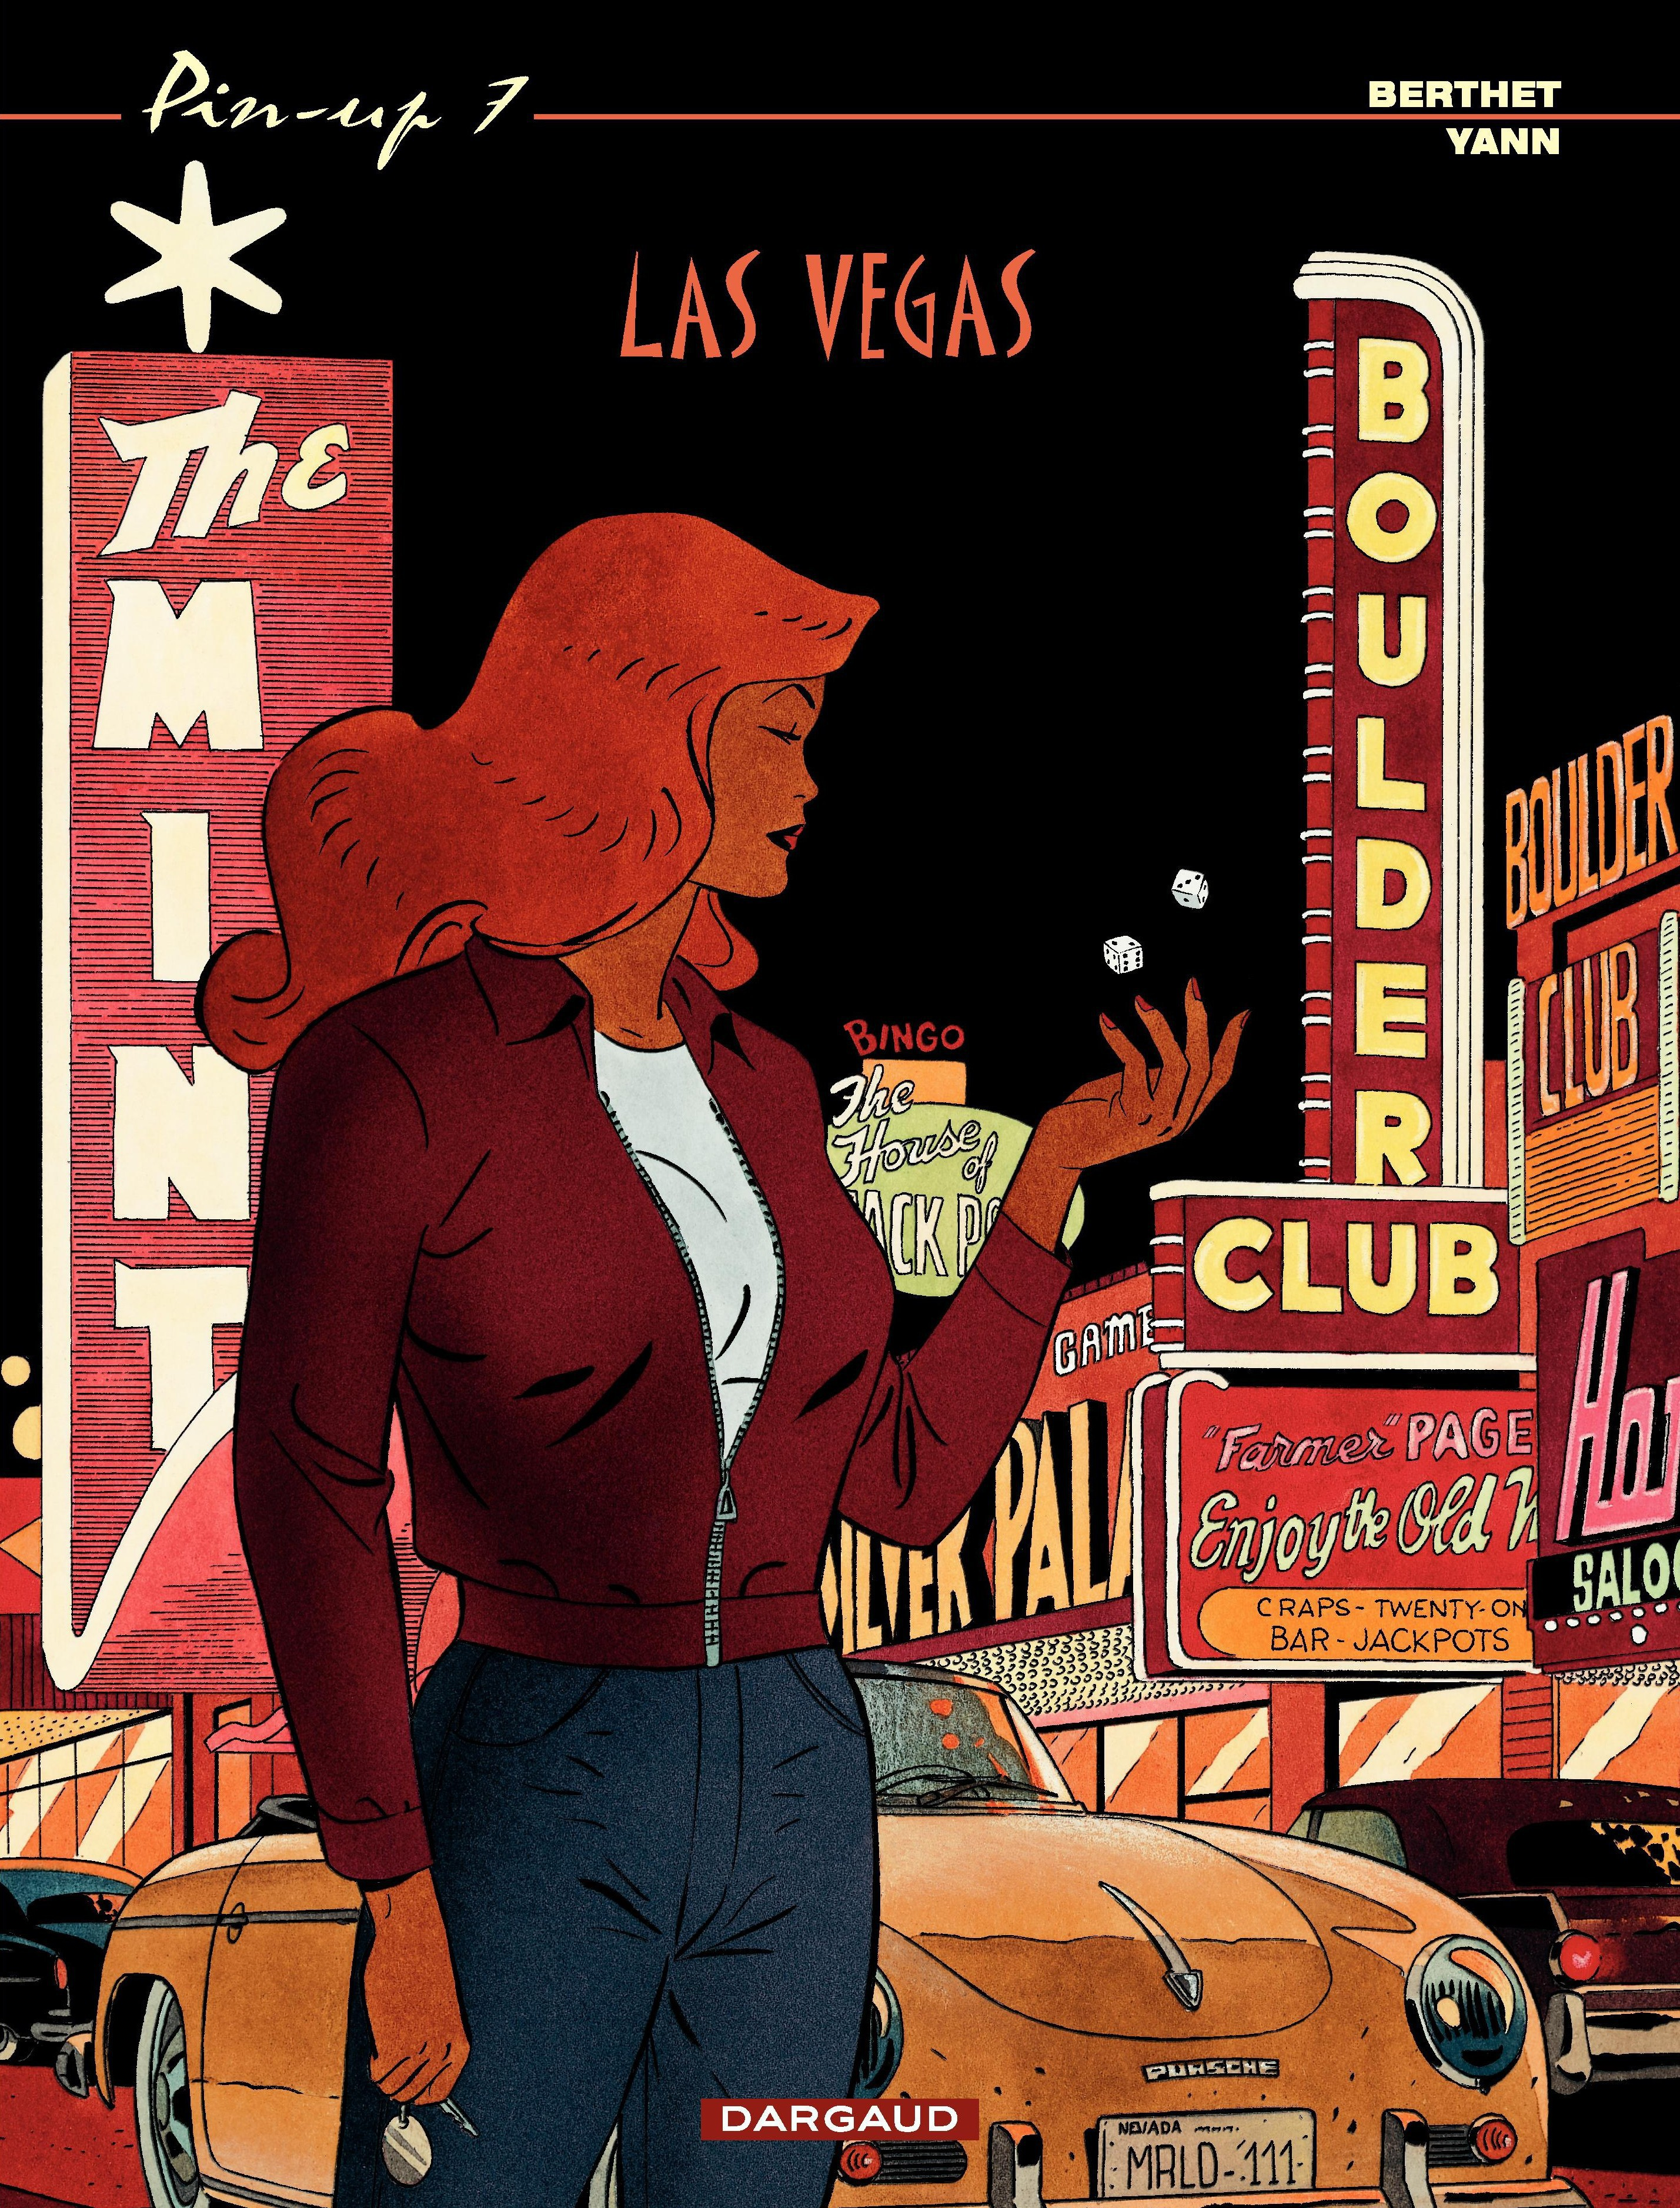 Pin-up - tome 7 - Las Vegas